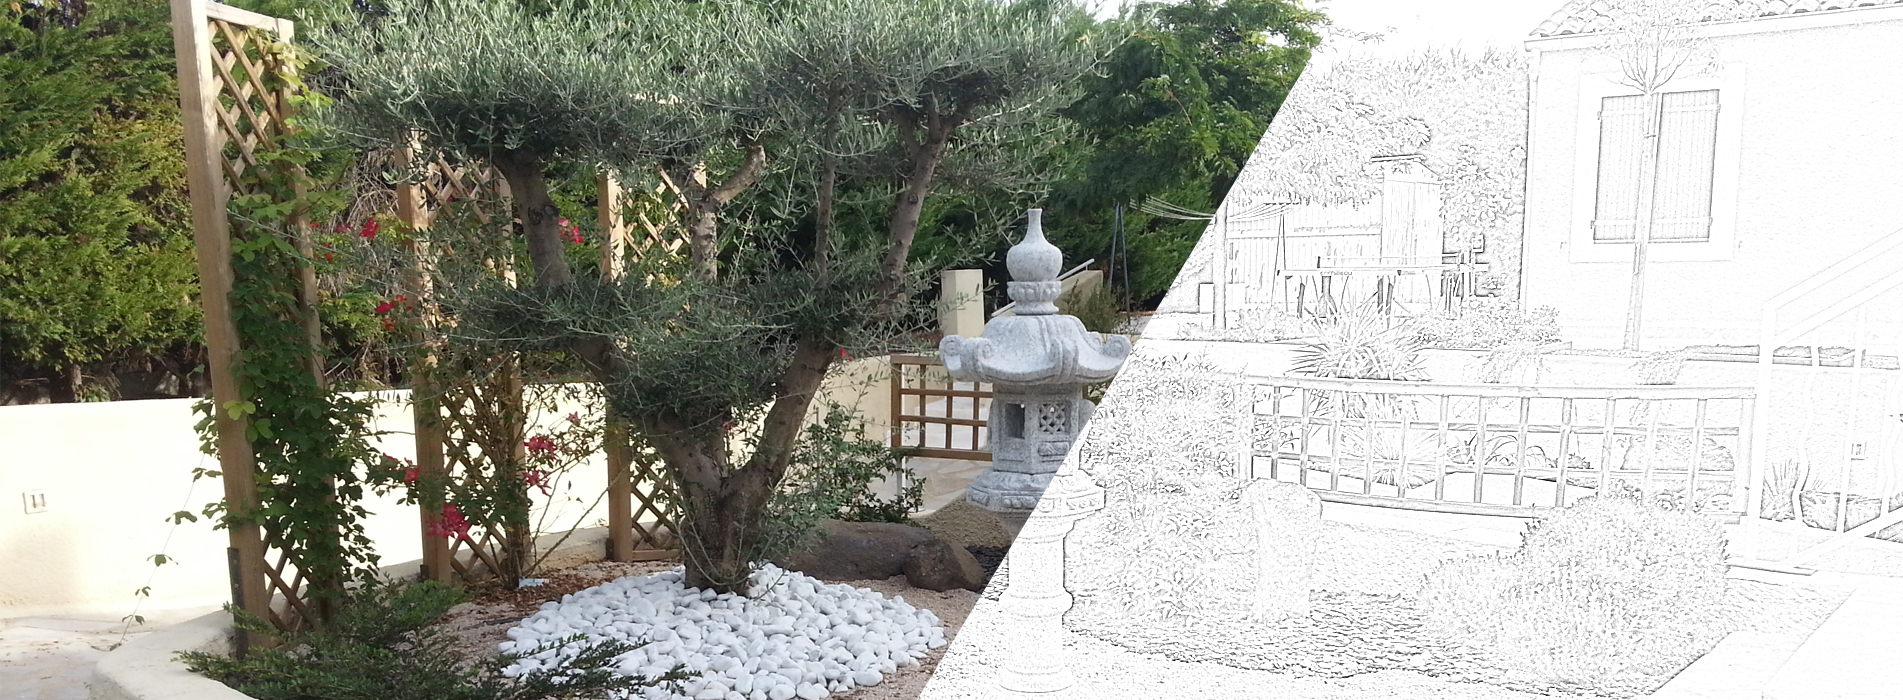 Am nagement de jardins et pose de syst mes d 39 arrosage montpellier - Creation jardin mediterraneen saint paul ...